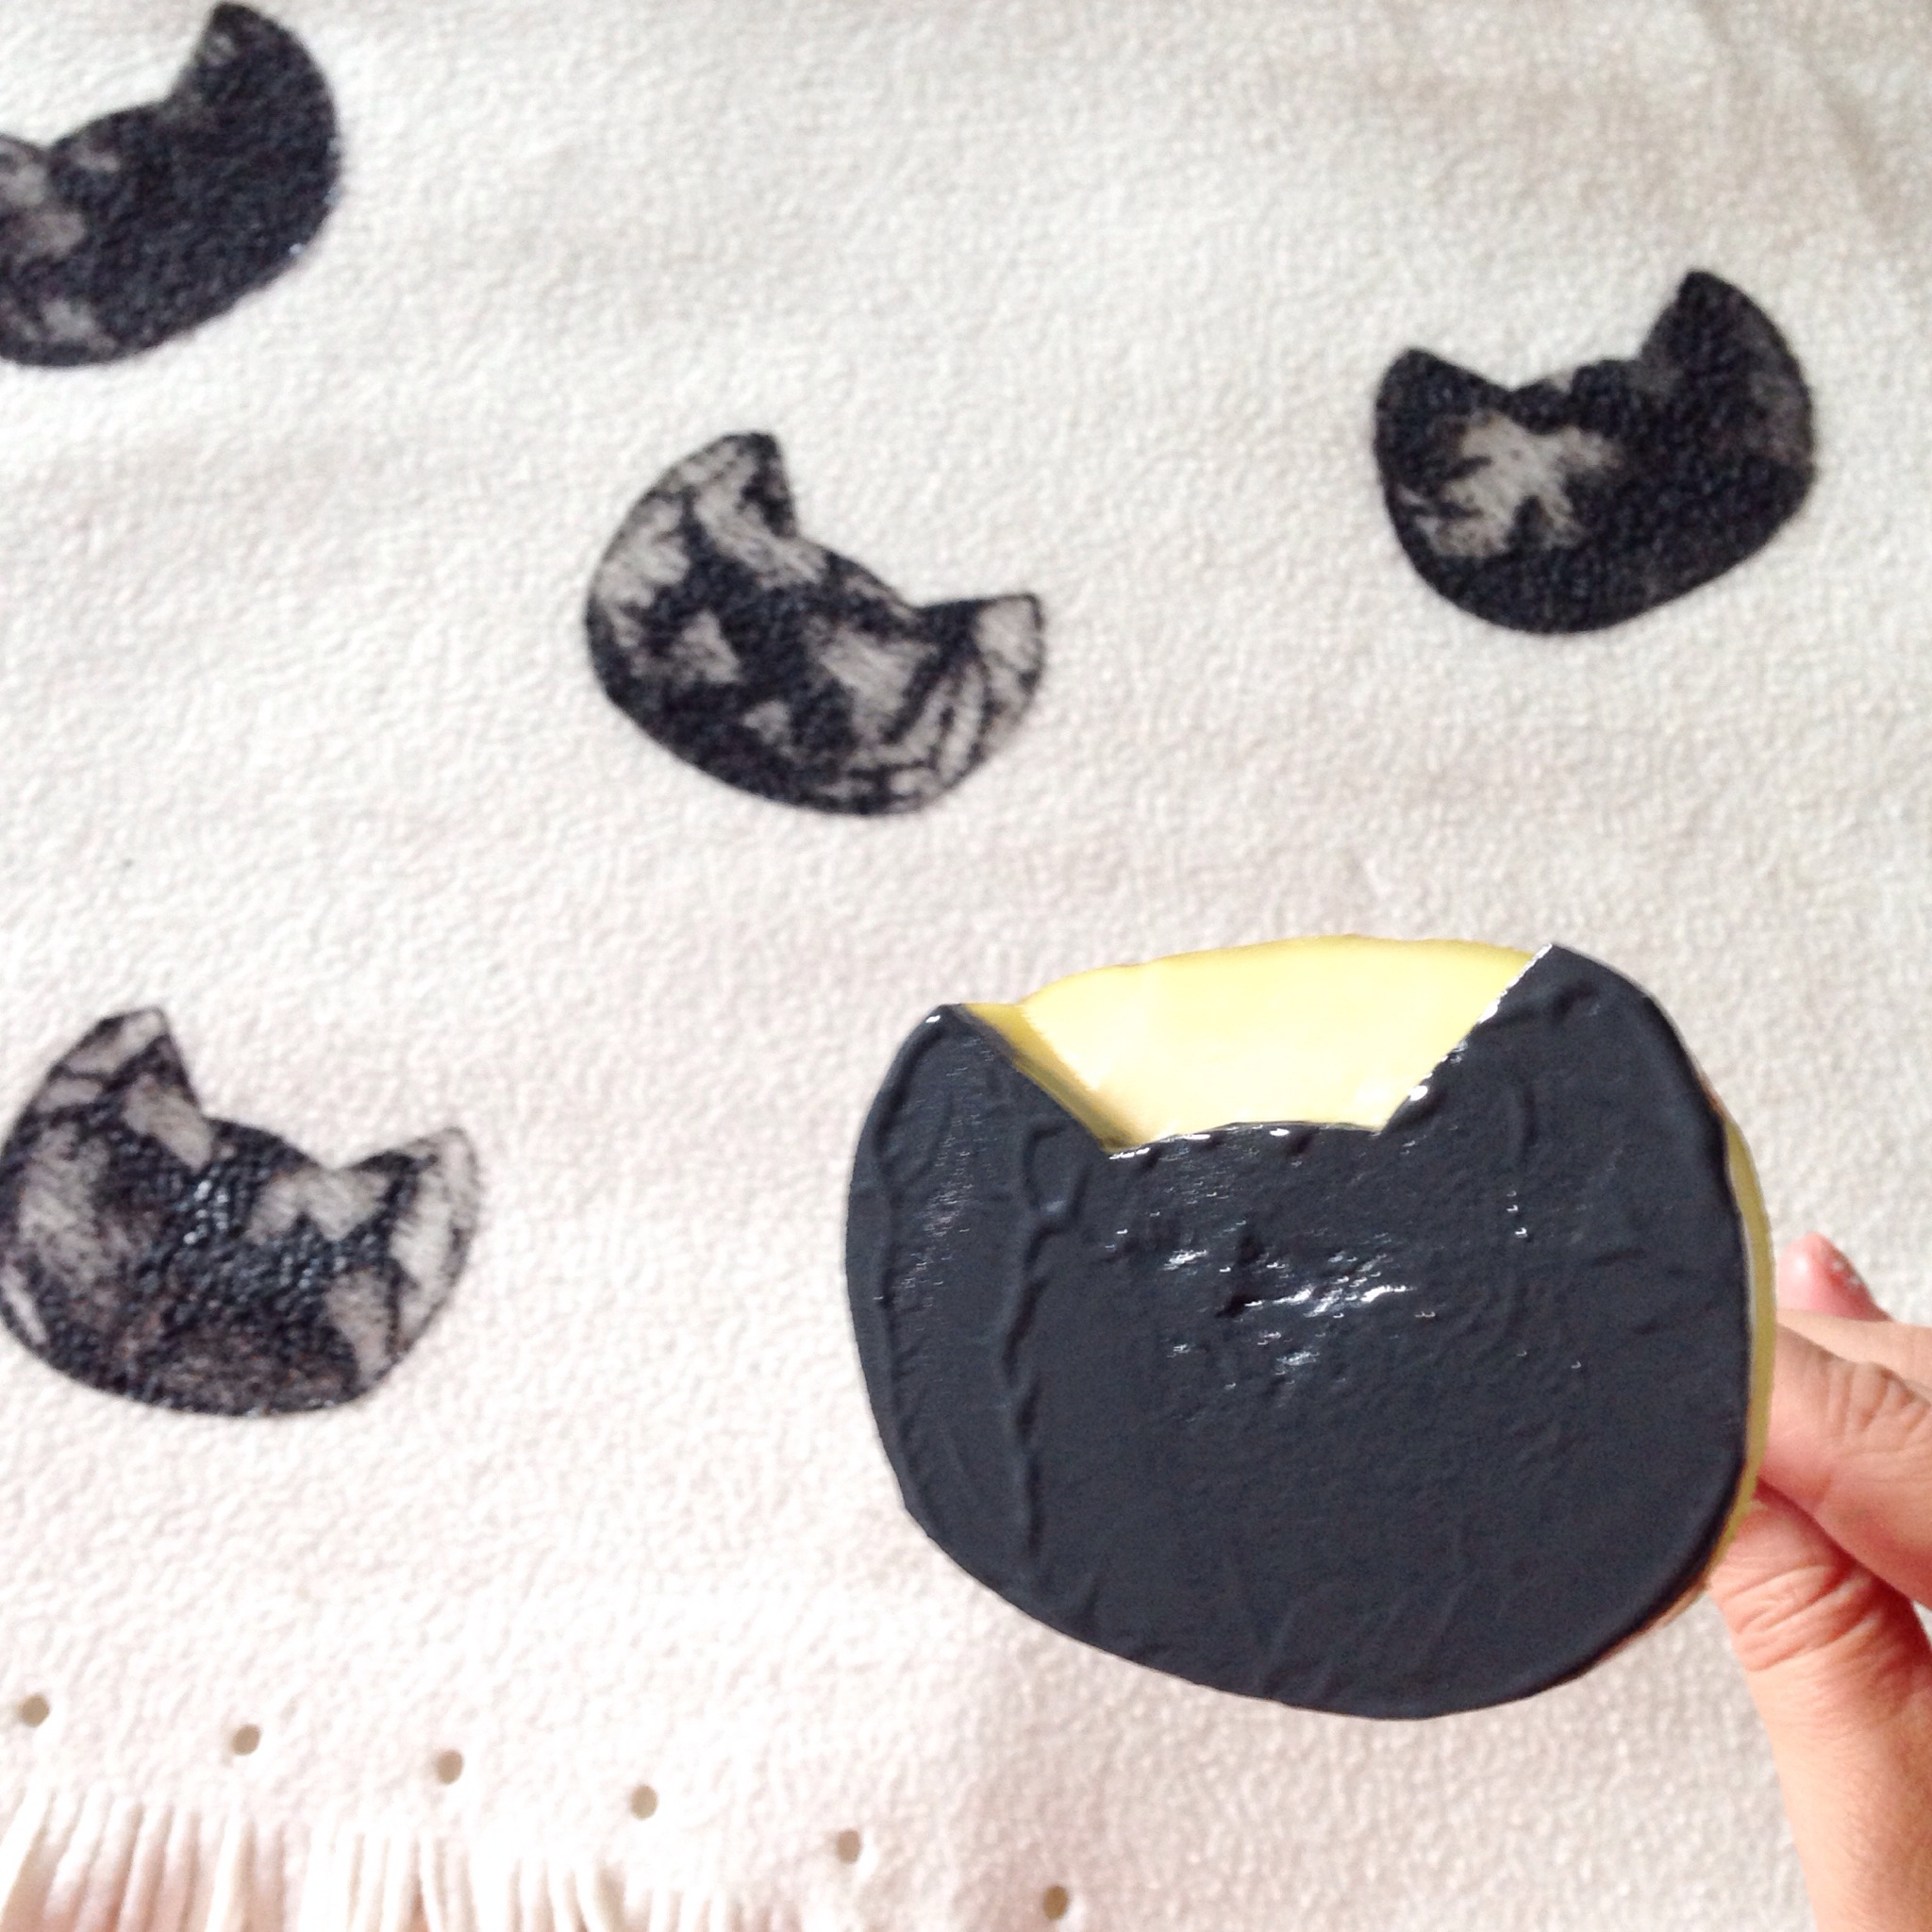 How to make a potato stamped cat fleece